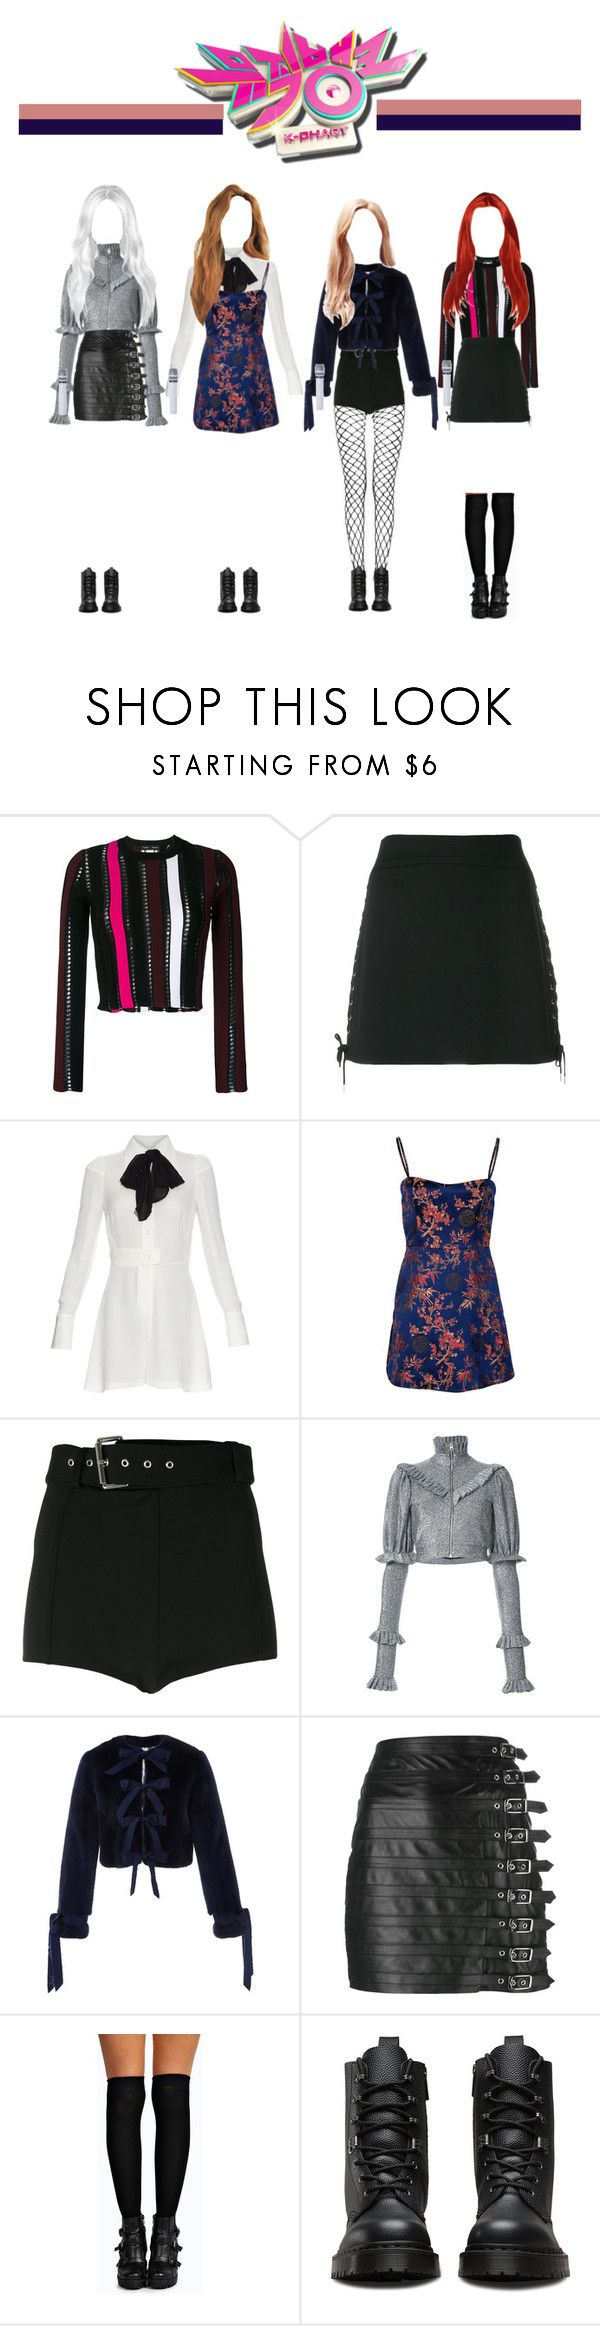 """[ Music Bank ] Do You Wanna Play ?"" by officialsrjh ❤ liked on Polyvore featuring Proenza Schouler, McQ by Alexander McQueen, Maison Margiela, Versus, Dilara Findikoglu, Jonathan Cohen, Manokhi, Boohoo, Dr. Martens and JennieSRJH"